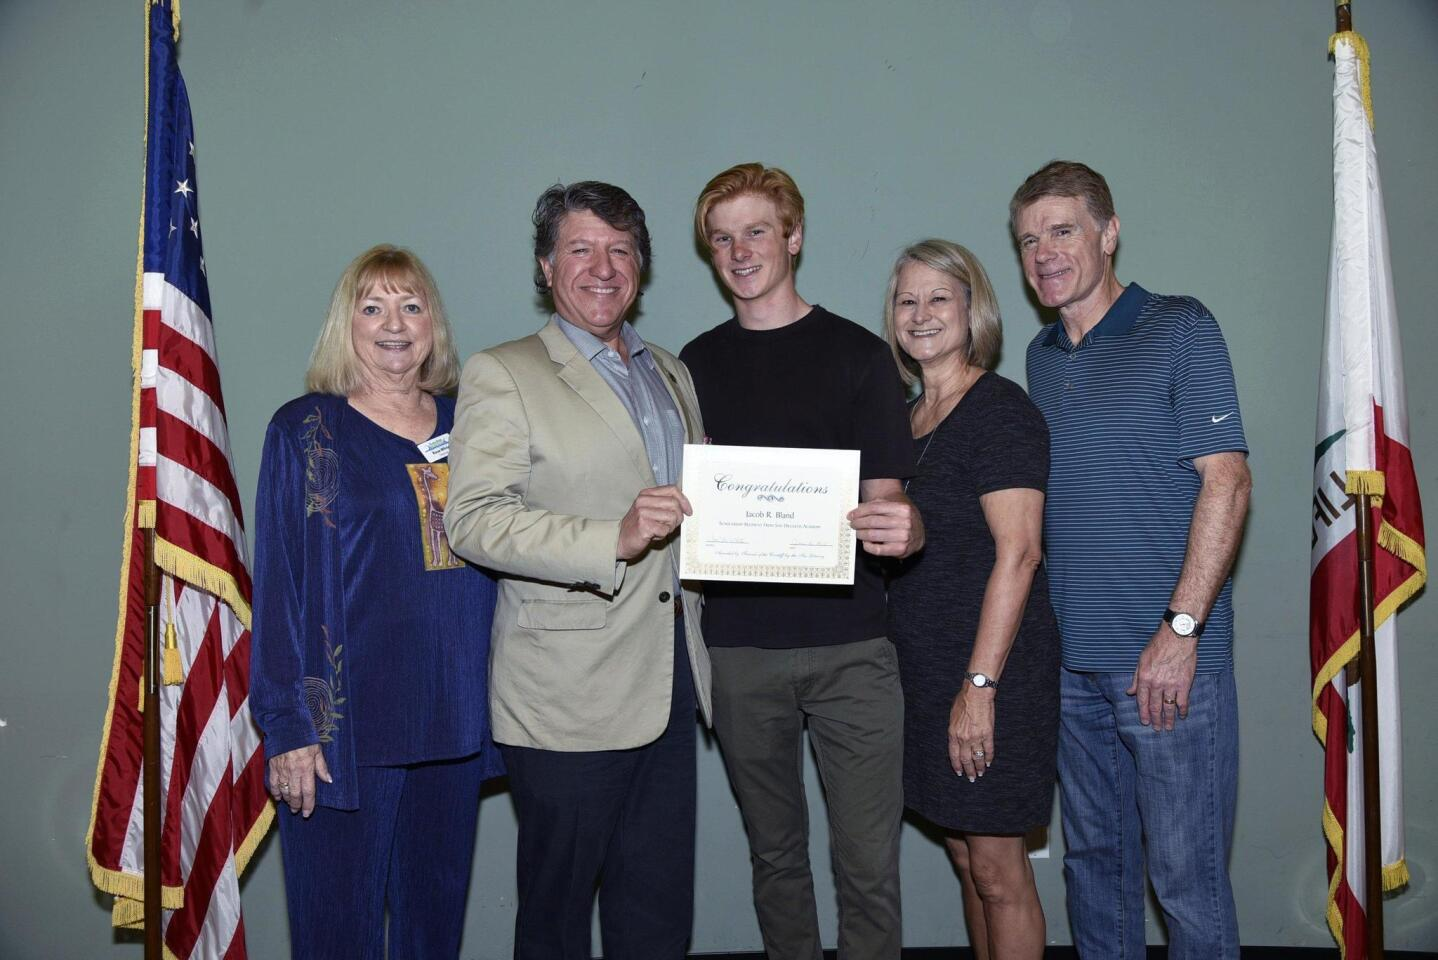 2018 Scholarship Committee member Rose White, County Library Director Migell Acosta, scholarship recipient Jacob Bland, Sarita and Bill Bland